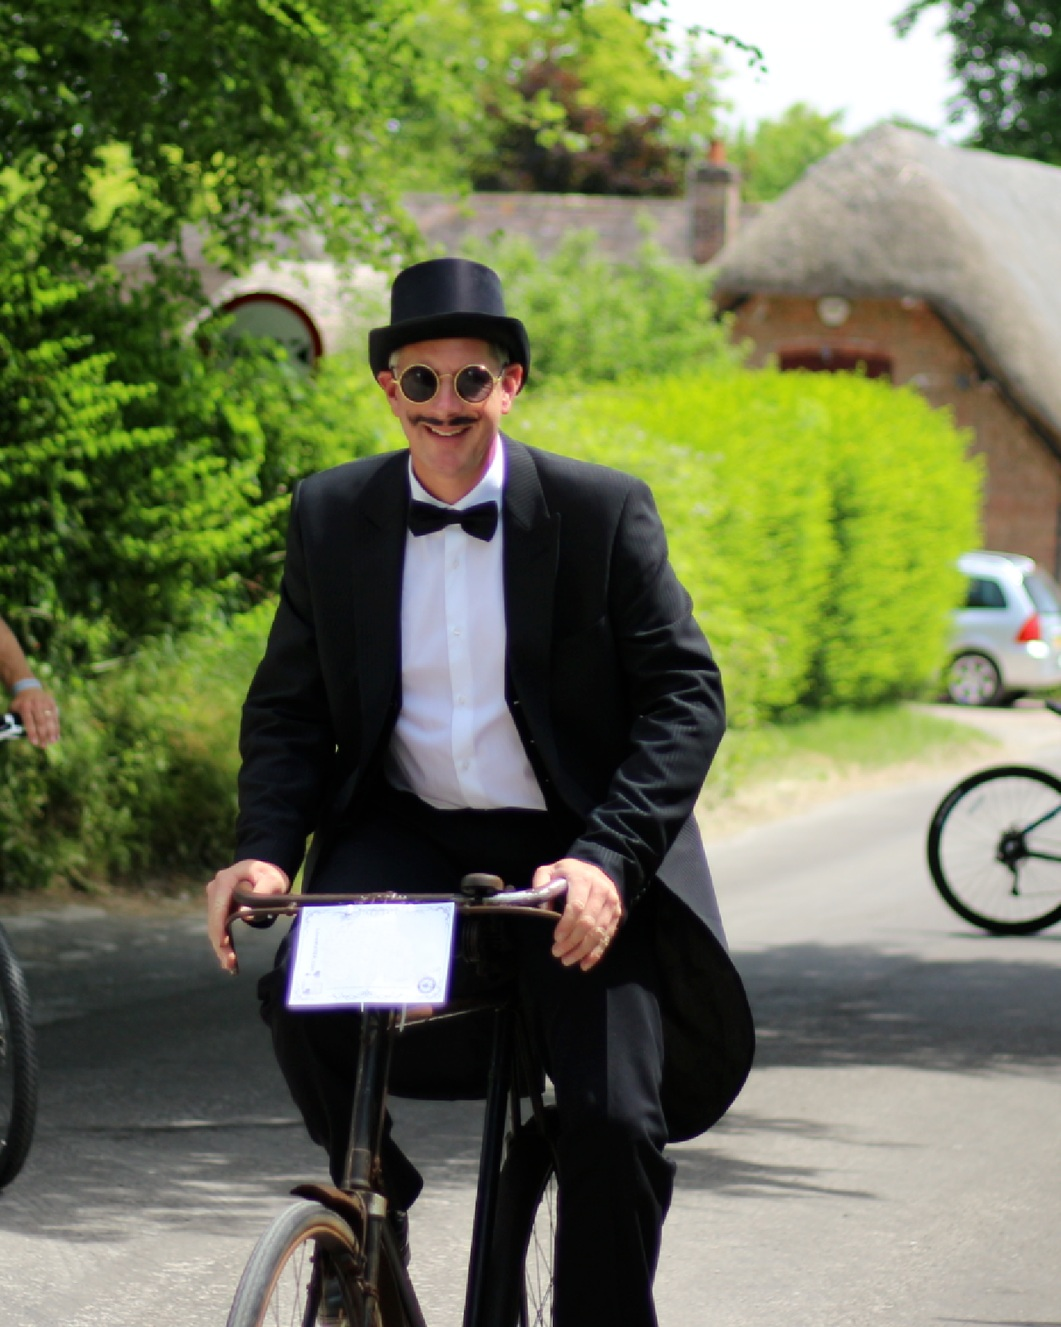 There will be prizes for Best Dressed Gentleman, Lady, Child, Group, Bicycle and Moustache!So why not come along with some jolly friends… - The Ride begins at 12 noon. Registration opens from 10:00 am. We have teamed up with the very popular Velo Domestique who have offered free checks on participant bicycles. Additionally, why not book in with Pearl's Pin Up Parlour who will give you great lips, flicks and hair ready in time for the Ride.During the ride, Marshalls on bicycles and chaps from the Distinguished Gentleman's Ride and Dorset Free Riderz will cruise along with you - keeping an eye on you and the road ahead.